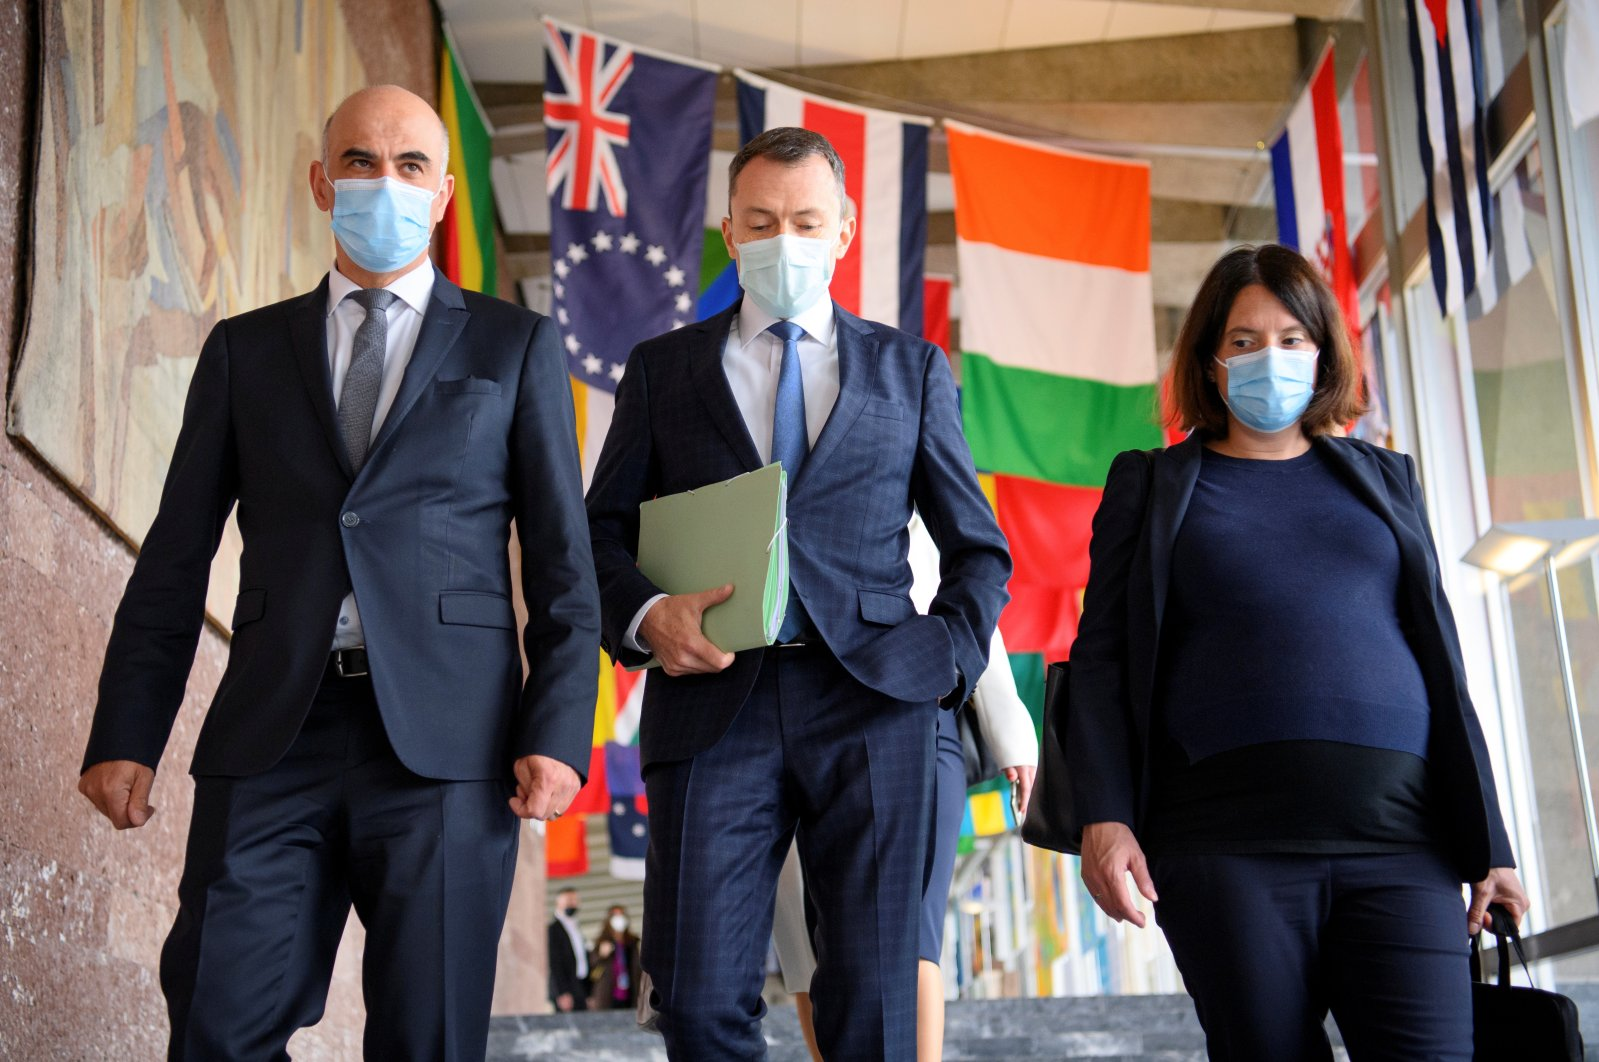 (L-R) Swiss Interior and Health Minister Alain Berset walks with the Swiss ambassador and permanent representative of Switzerland to the United Nations, Juerg Lauber, and Swiss Ambassador Nora Kronig Romero, the head of the International Affairs Division and vice director of the Federal Office of Public Health, before speaking at the opening of the 74th World Health Assembly at the World Health Organization headquarters, in Geneva, Switzerland, May 24, 2021. (Laurent Gillieron/Pool via Reuters)